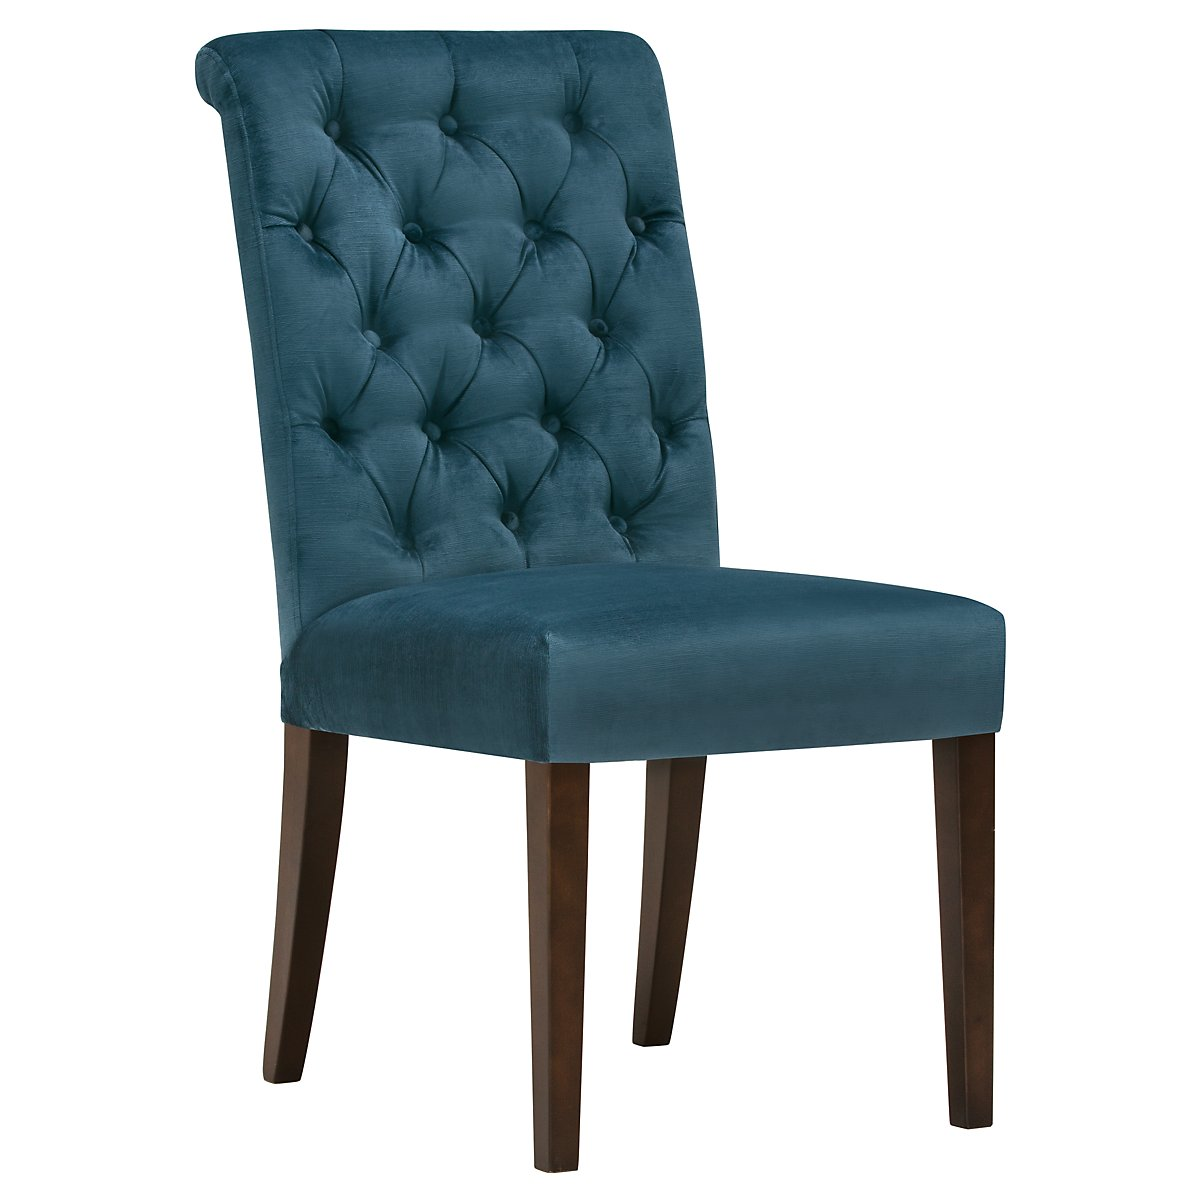 Sloane Dark Blue Fabric Upholstered Side Chair